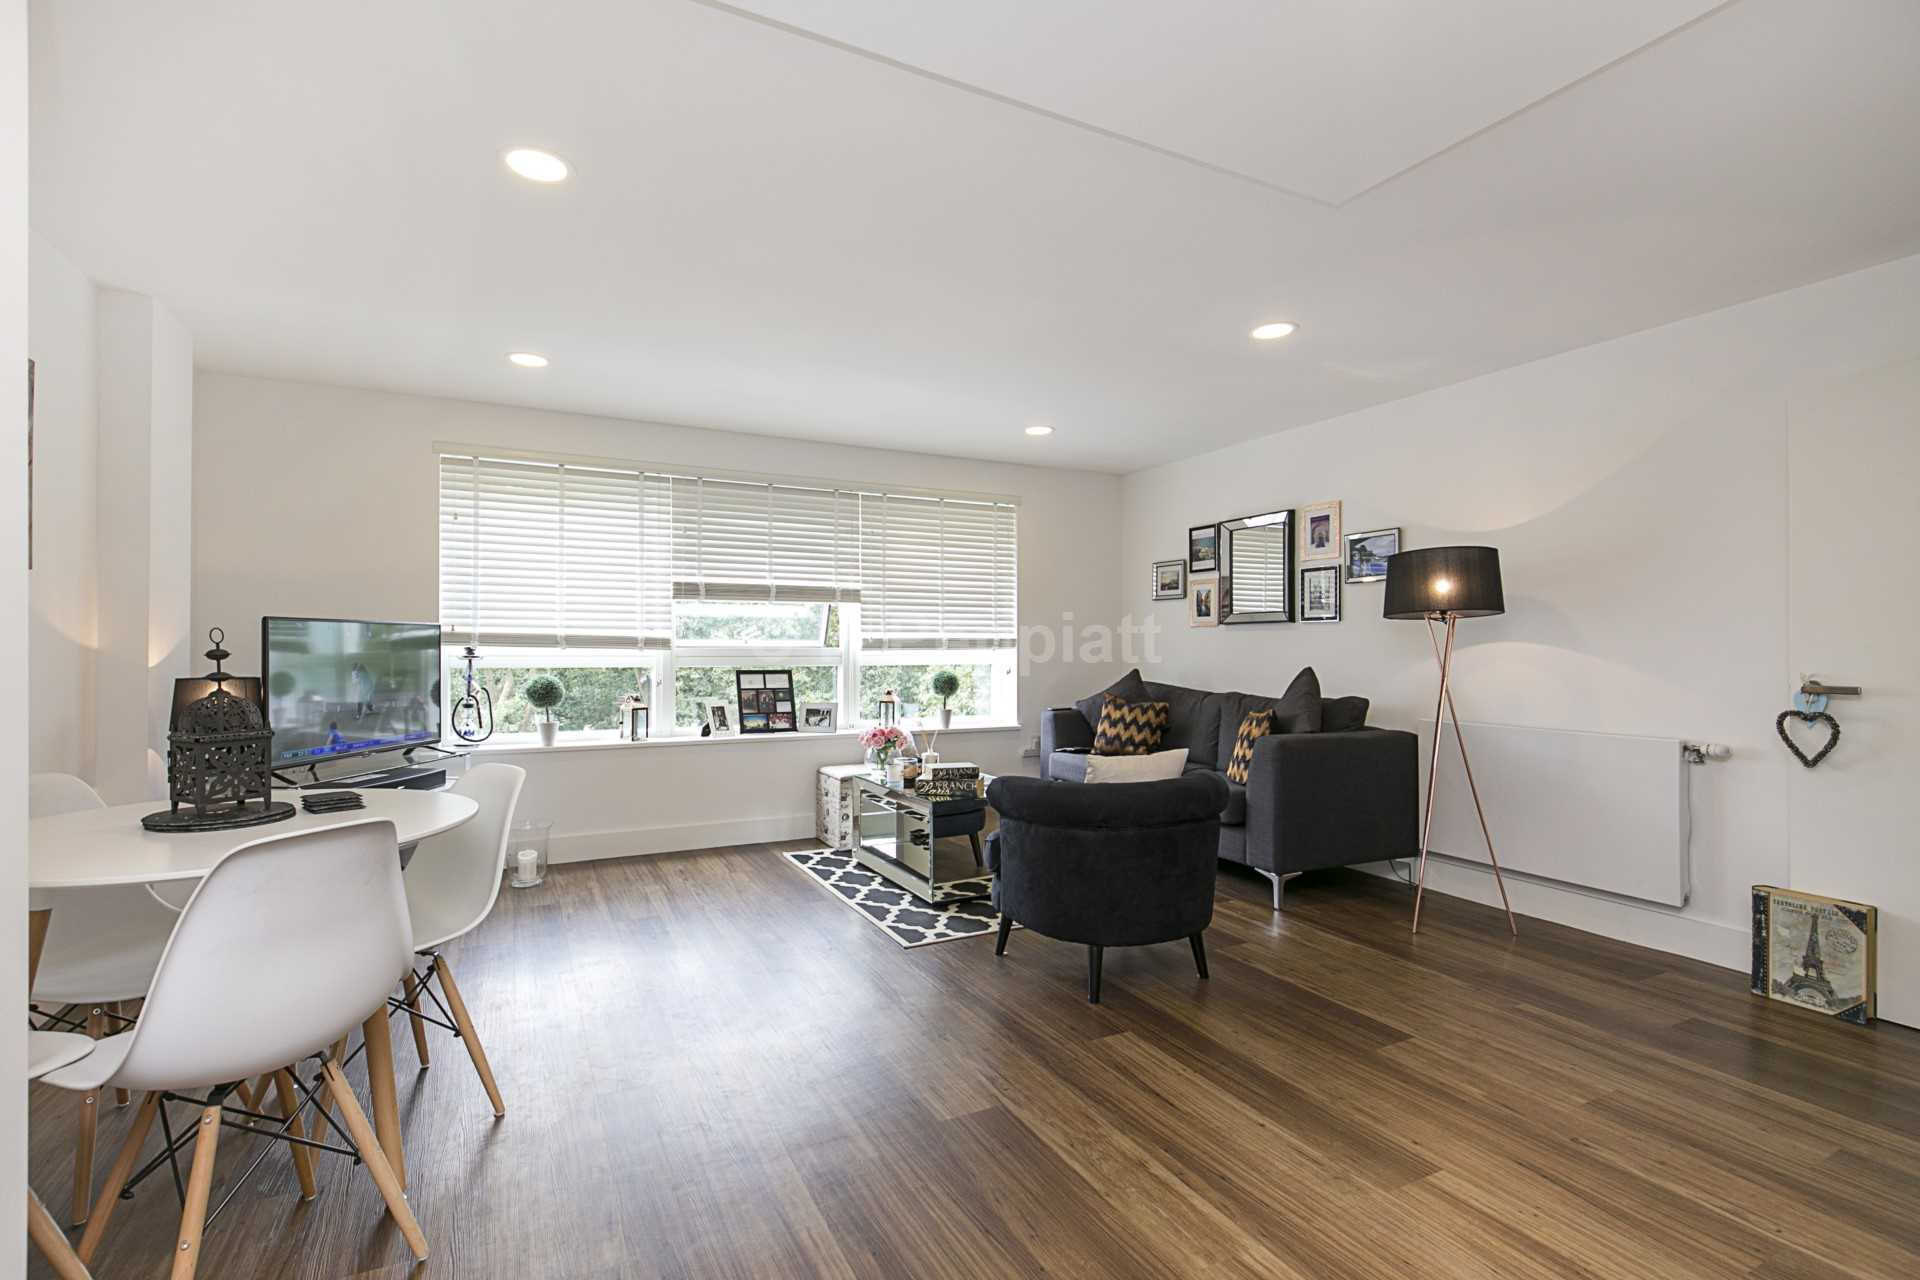 Flats And Apartments To Rent In Lower Holloway L2L77-1337